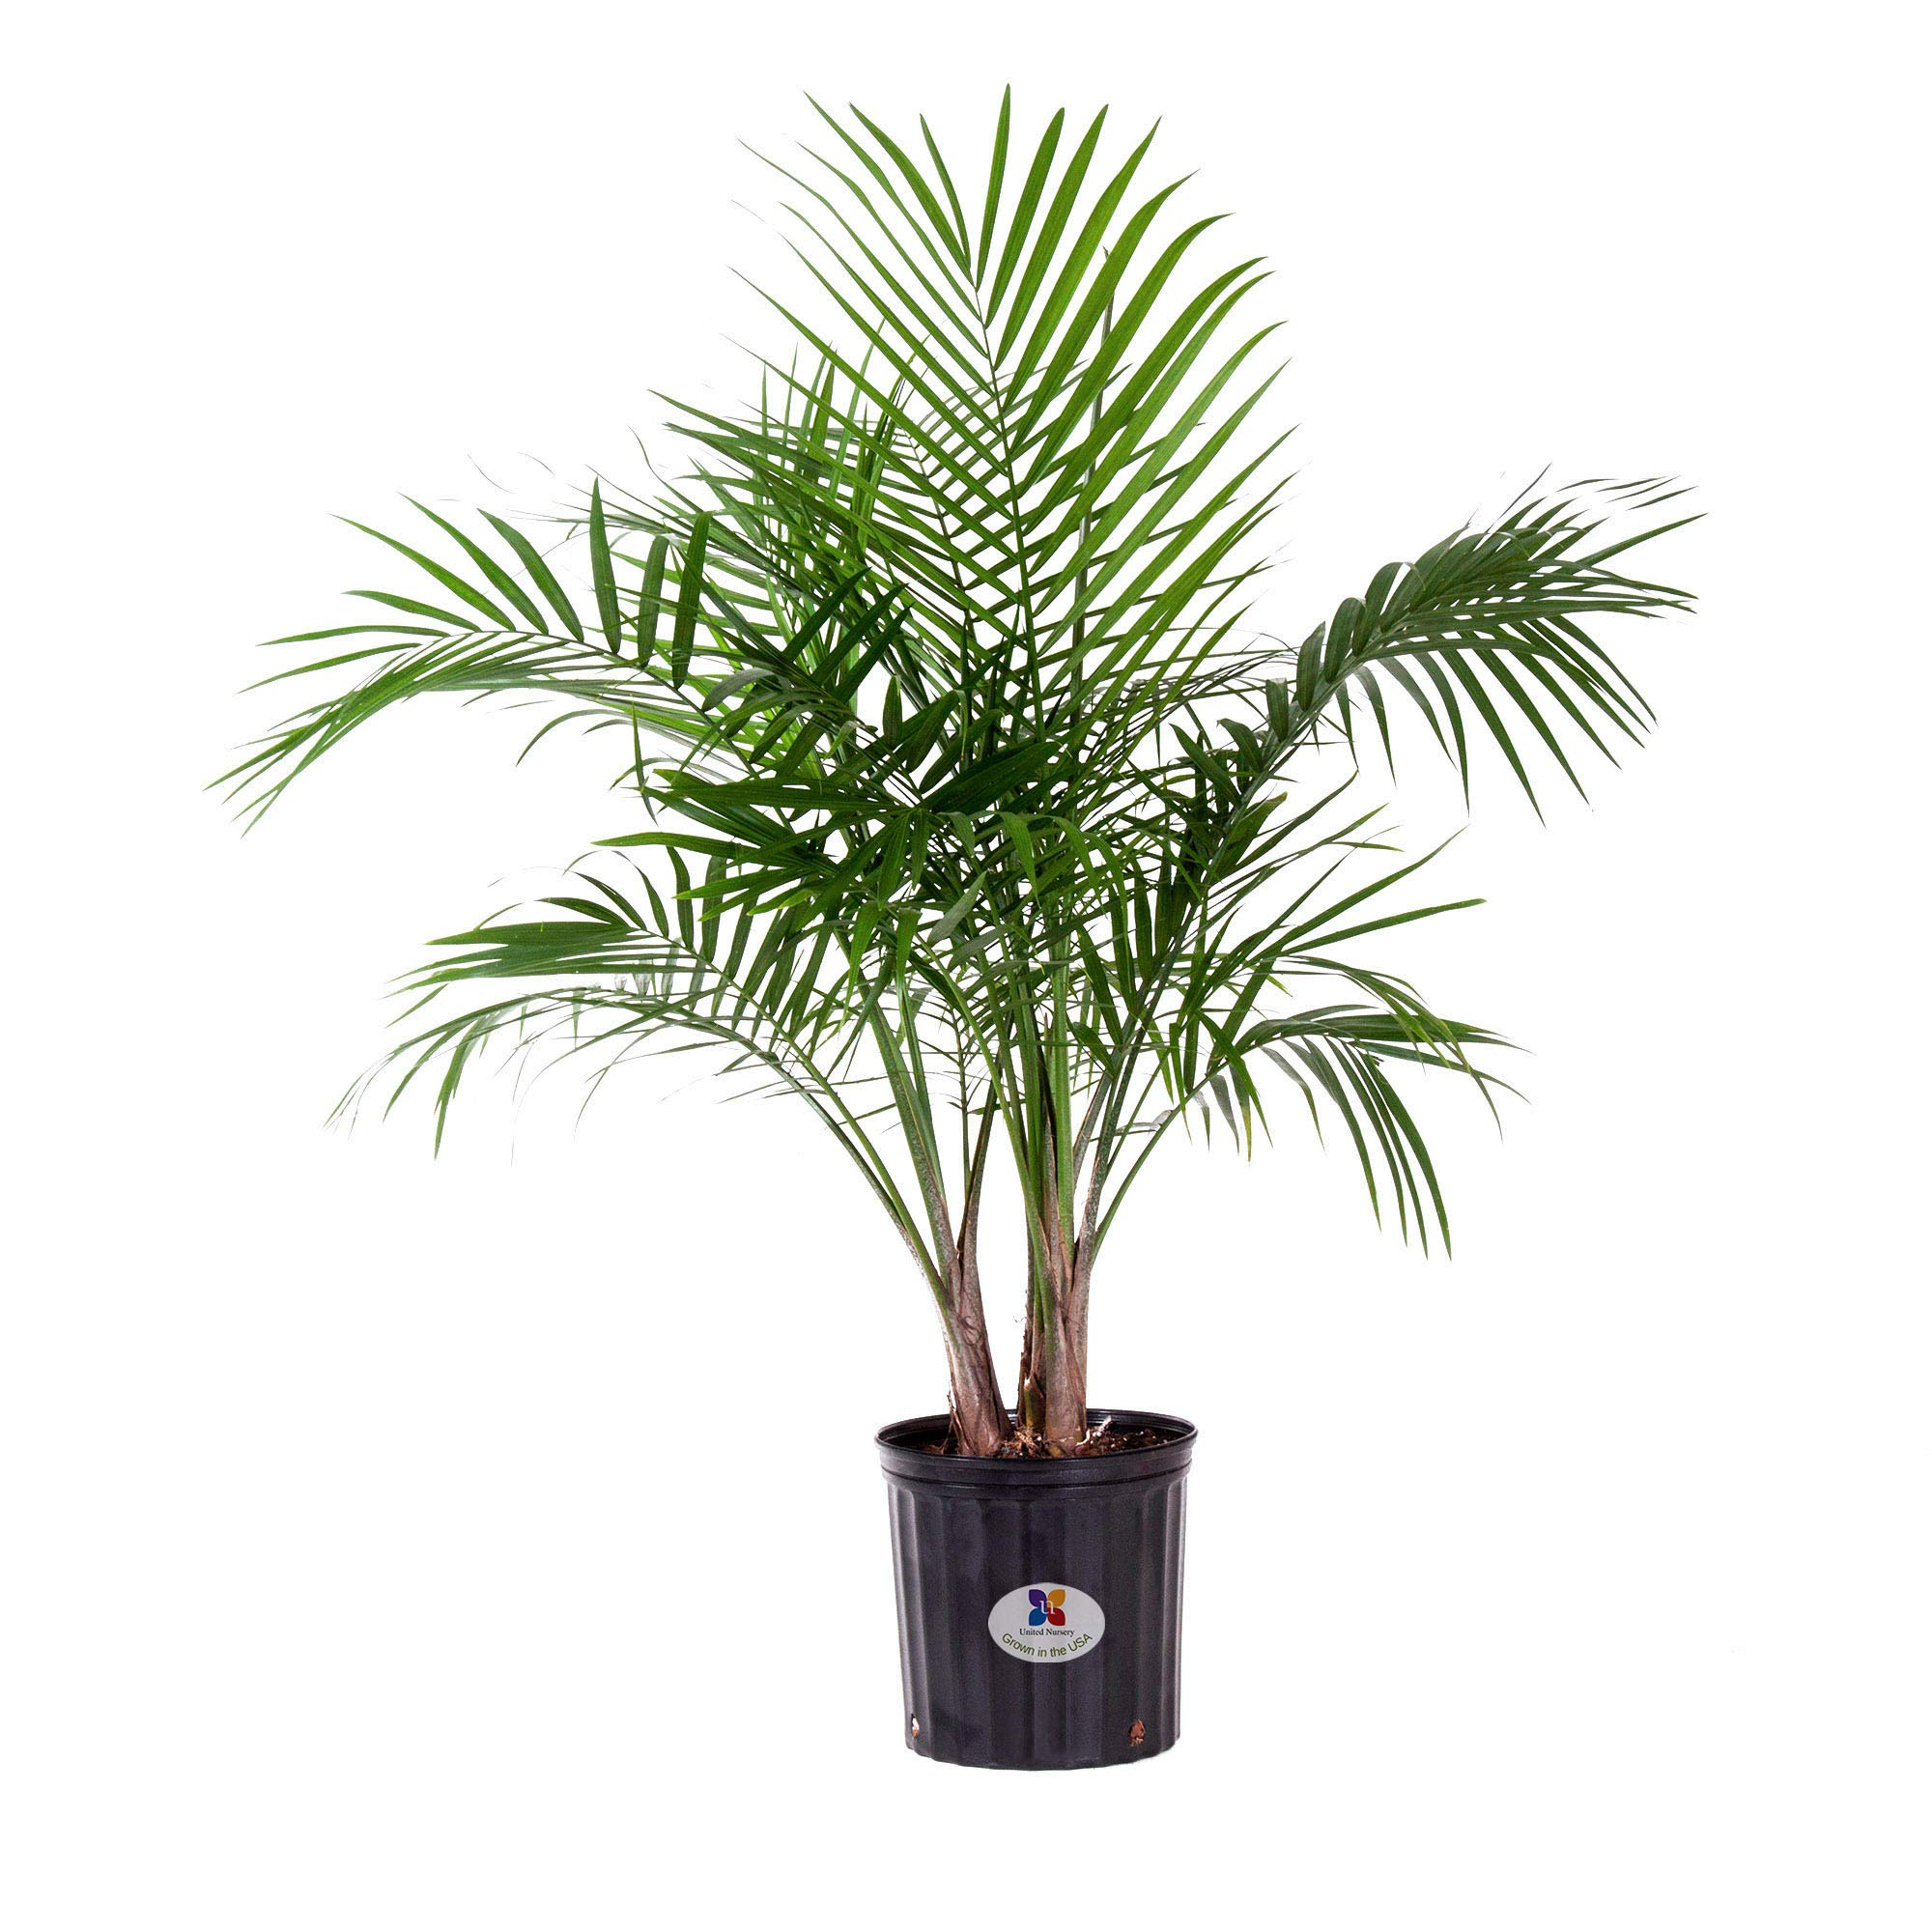 United Nursery Majesty Palm Tree, Live Indoor and Outdoor Plant. 36'' Shipping Size. Shipped Fresh in Grower Pot from Our Florida Farm